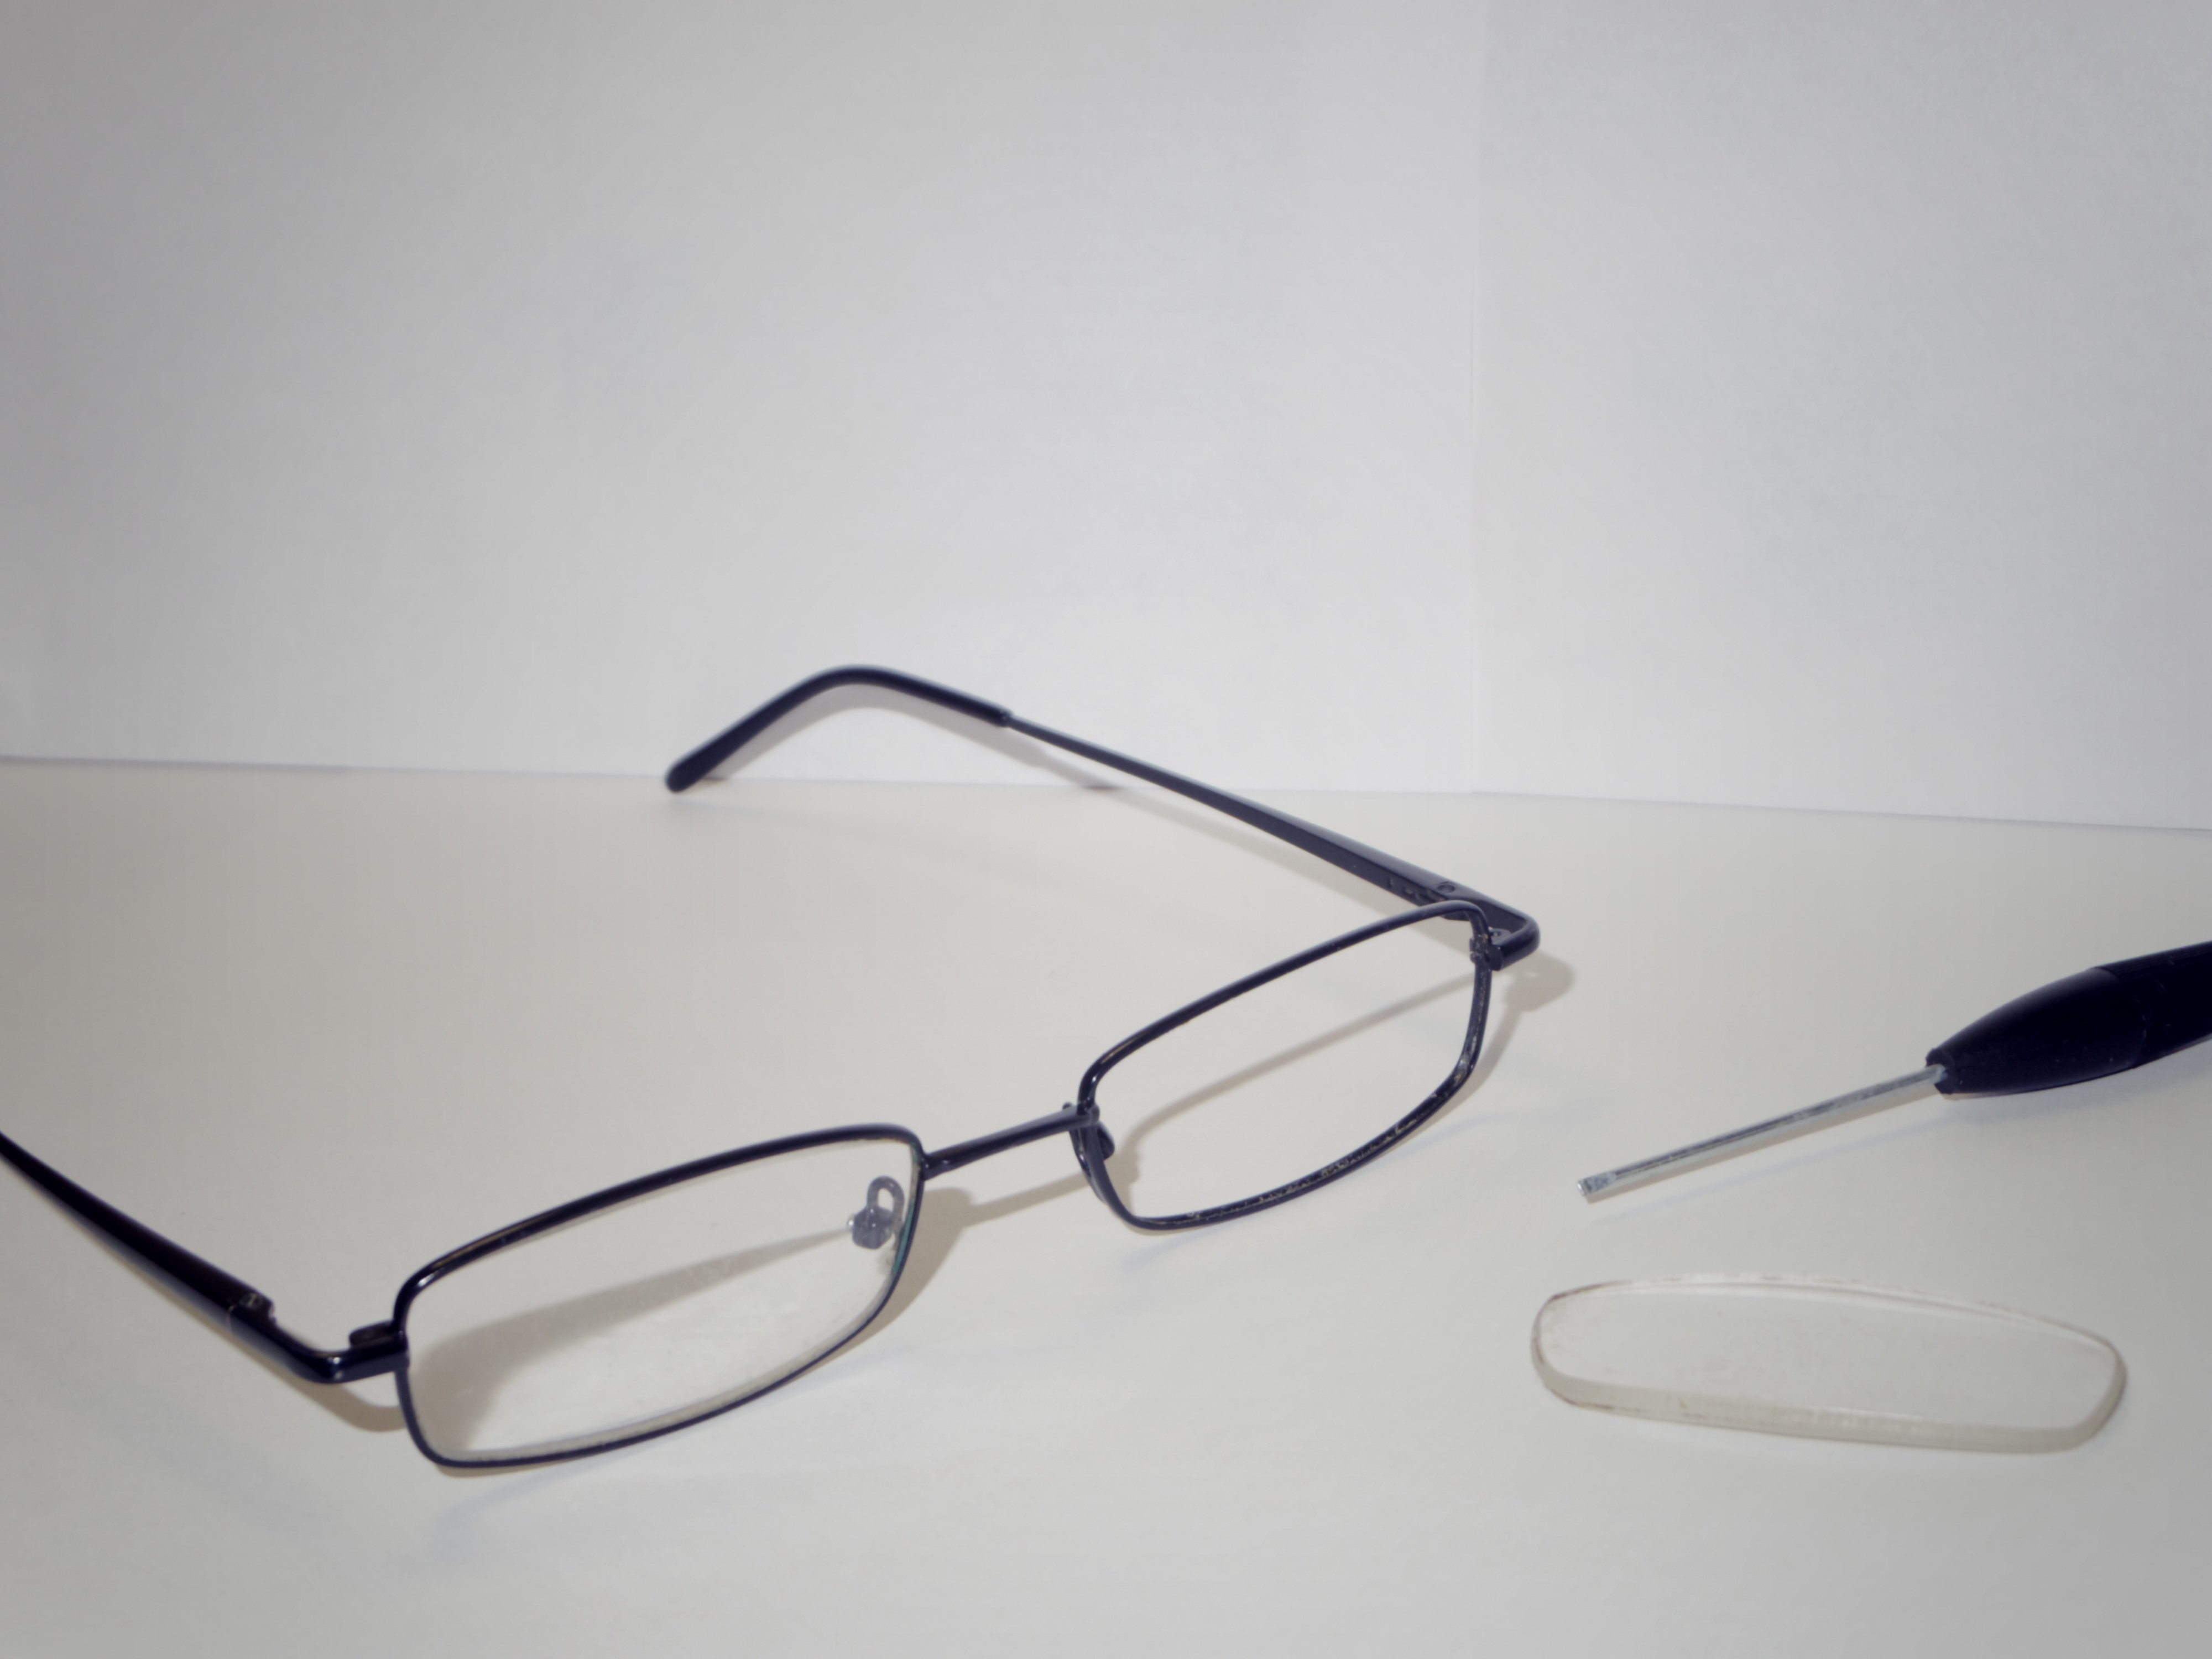 081954ac61 How to Replace Lens in Eyeglasses with Thin Metal Frames - iFixit ...